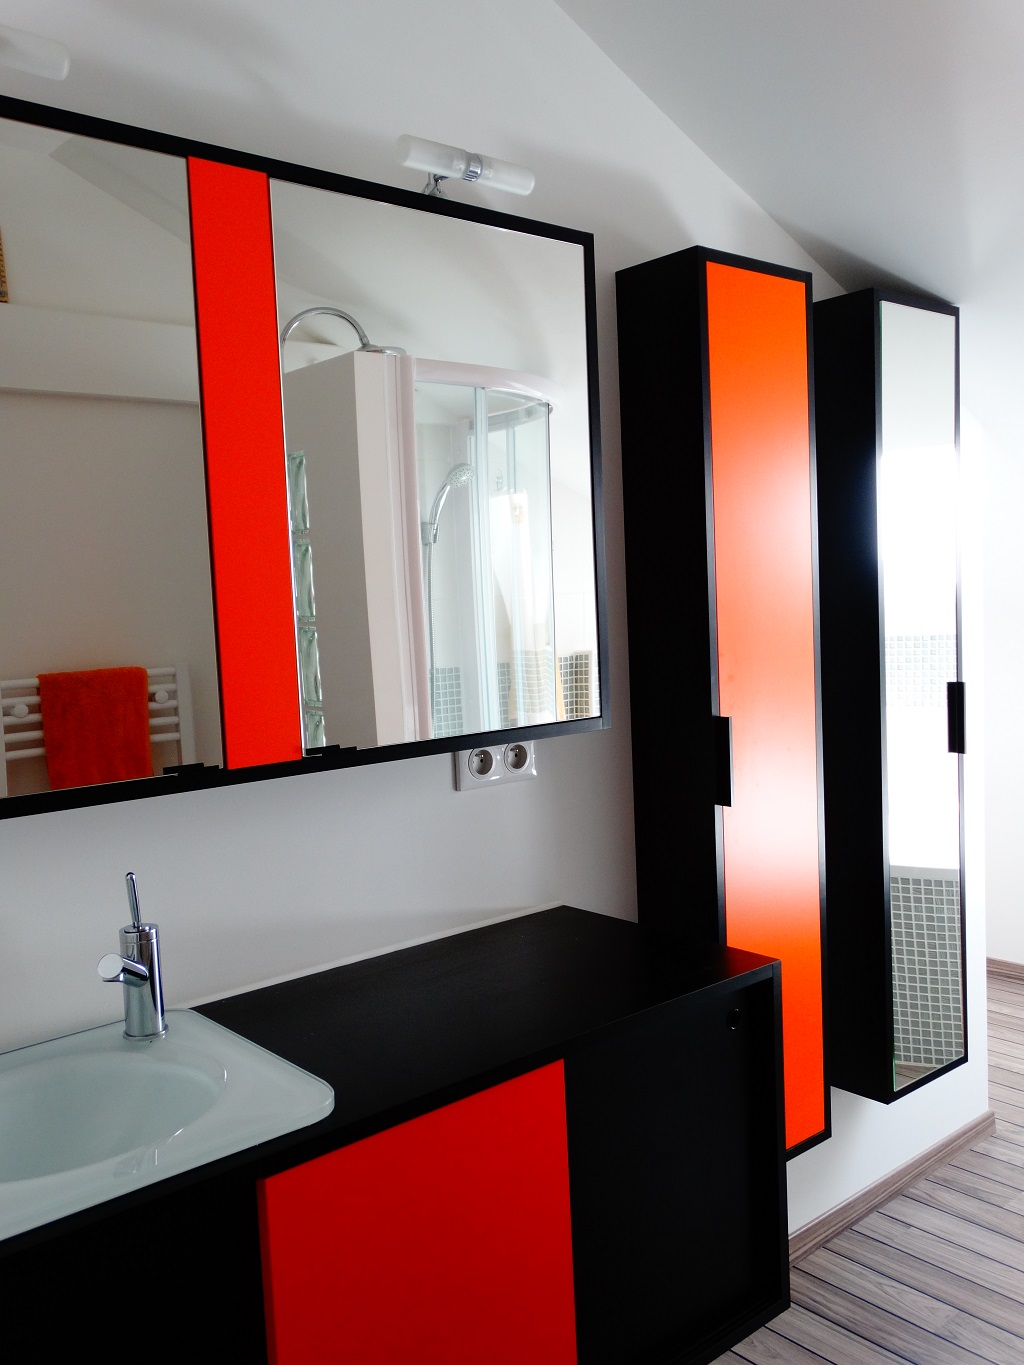 best salle de bain orange et noir ideas amazing house design. Black Bedroom Furniture Sets. Home Design Ideas